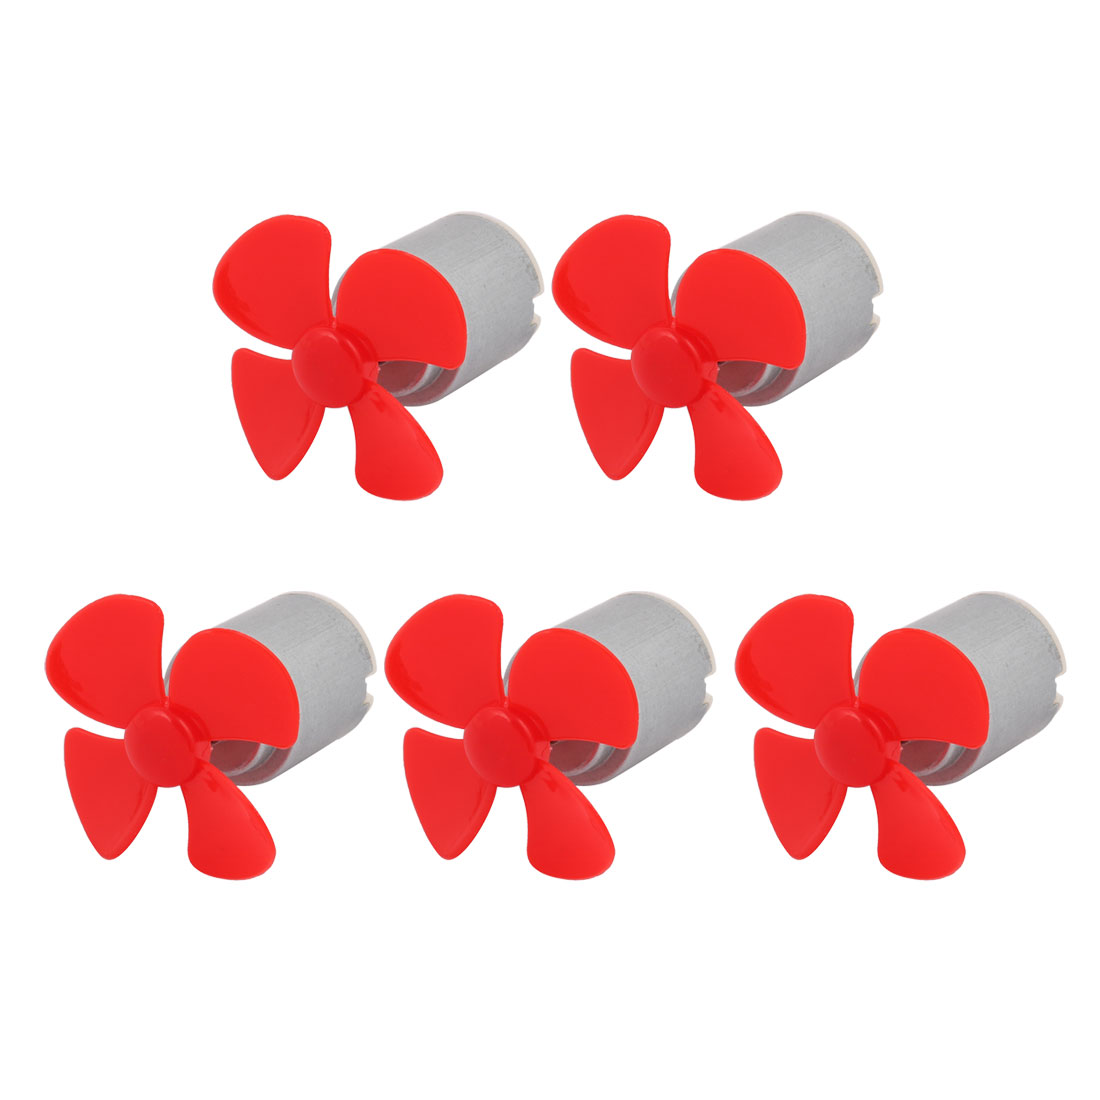 5pcs DC 3V 0.13A 13000RPM Strong Force Motor 4 Vanes 40mm Red Propeller for RC Aircraft